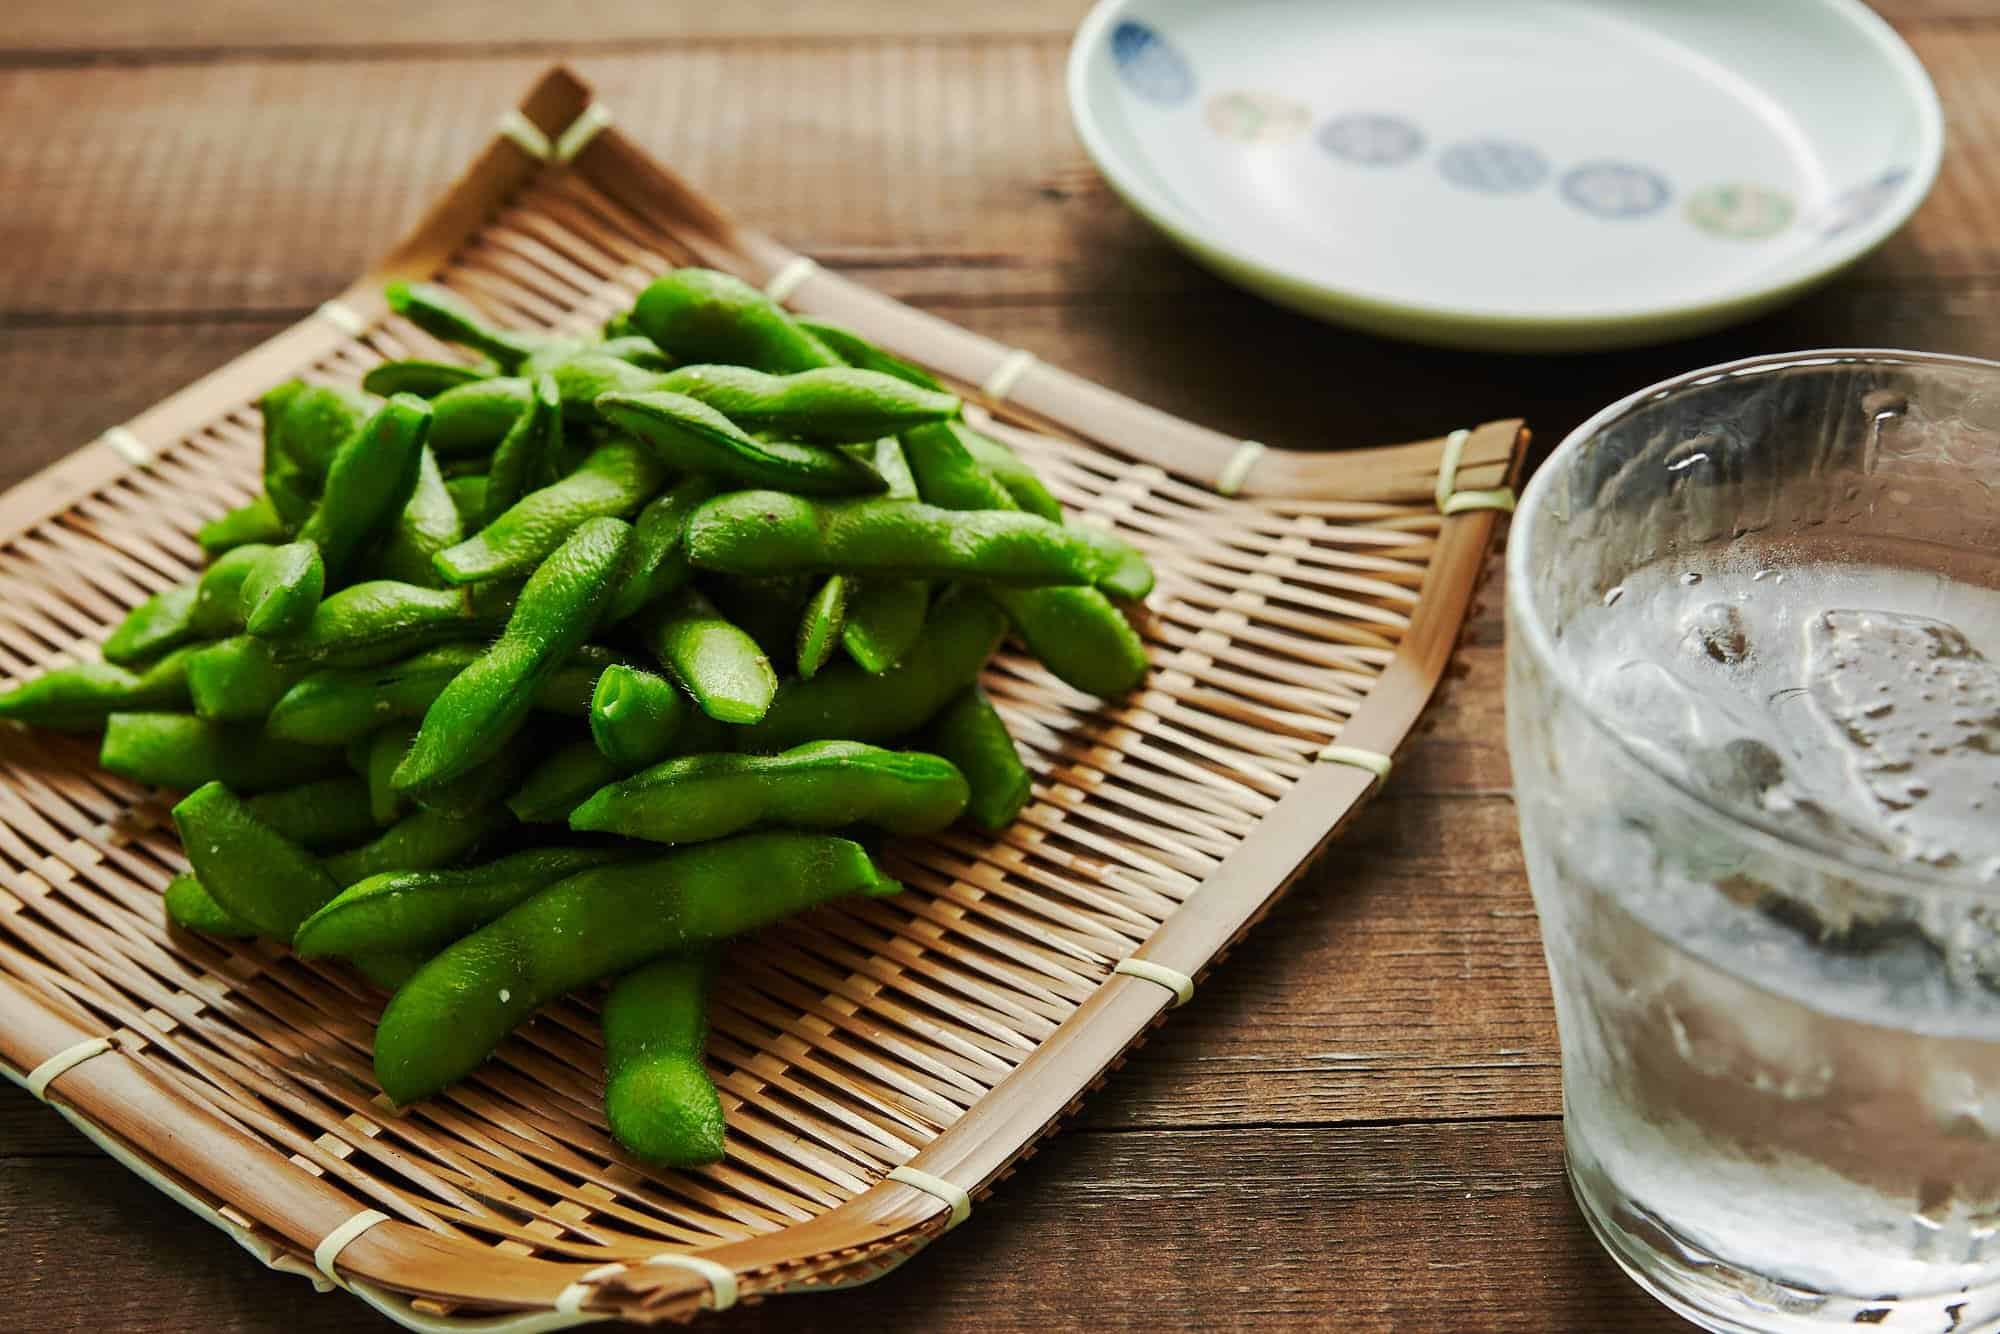 Edamame are just immature soy beans that have been boiled and salted. Here's an easy recipe for preparing this Japanese appetizer.